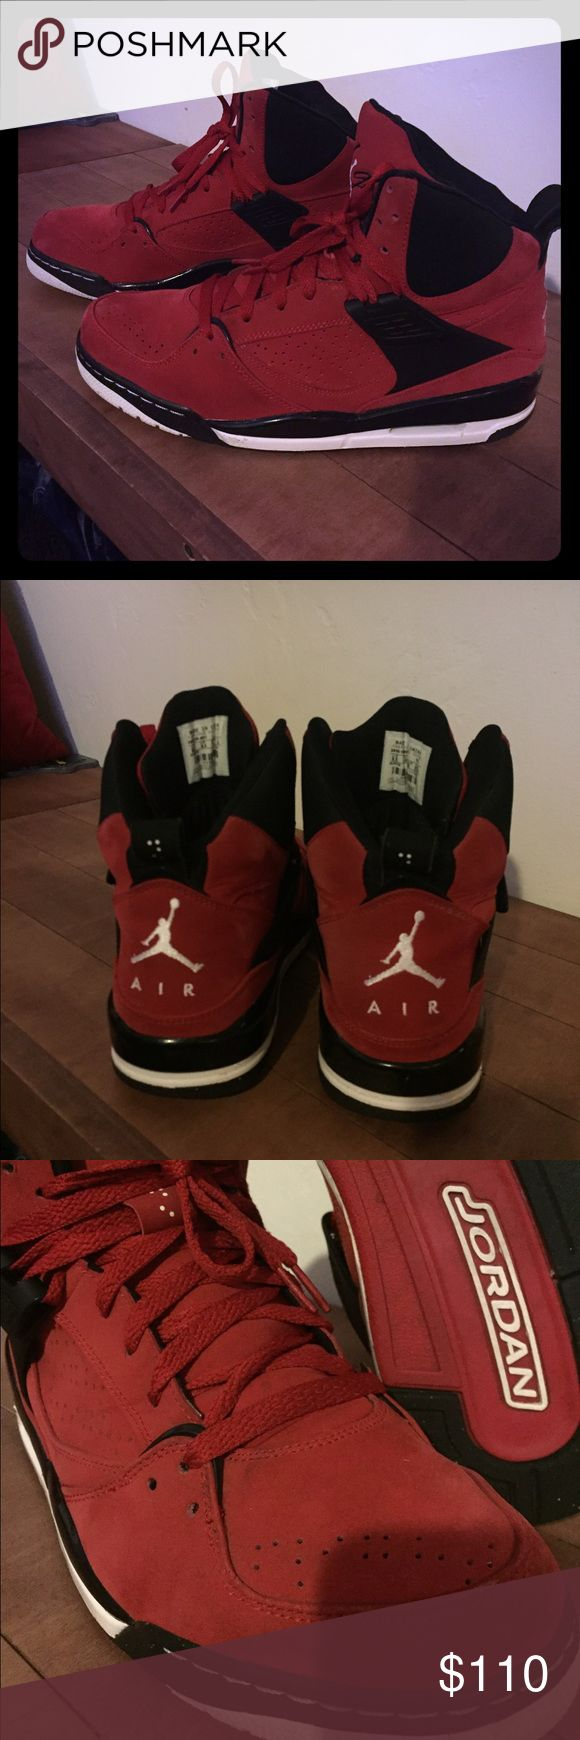 Rare Jordan flight 45 red suede 2010 Jordan flight 45 high in red suede rare in size and color in great condition for being seven years old. See pic on back of right shoe tiny rip barley noticeable on foot can be repaired. Suede is excellent condition Jordan Shoes Sneakers